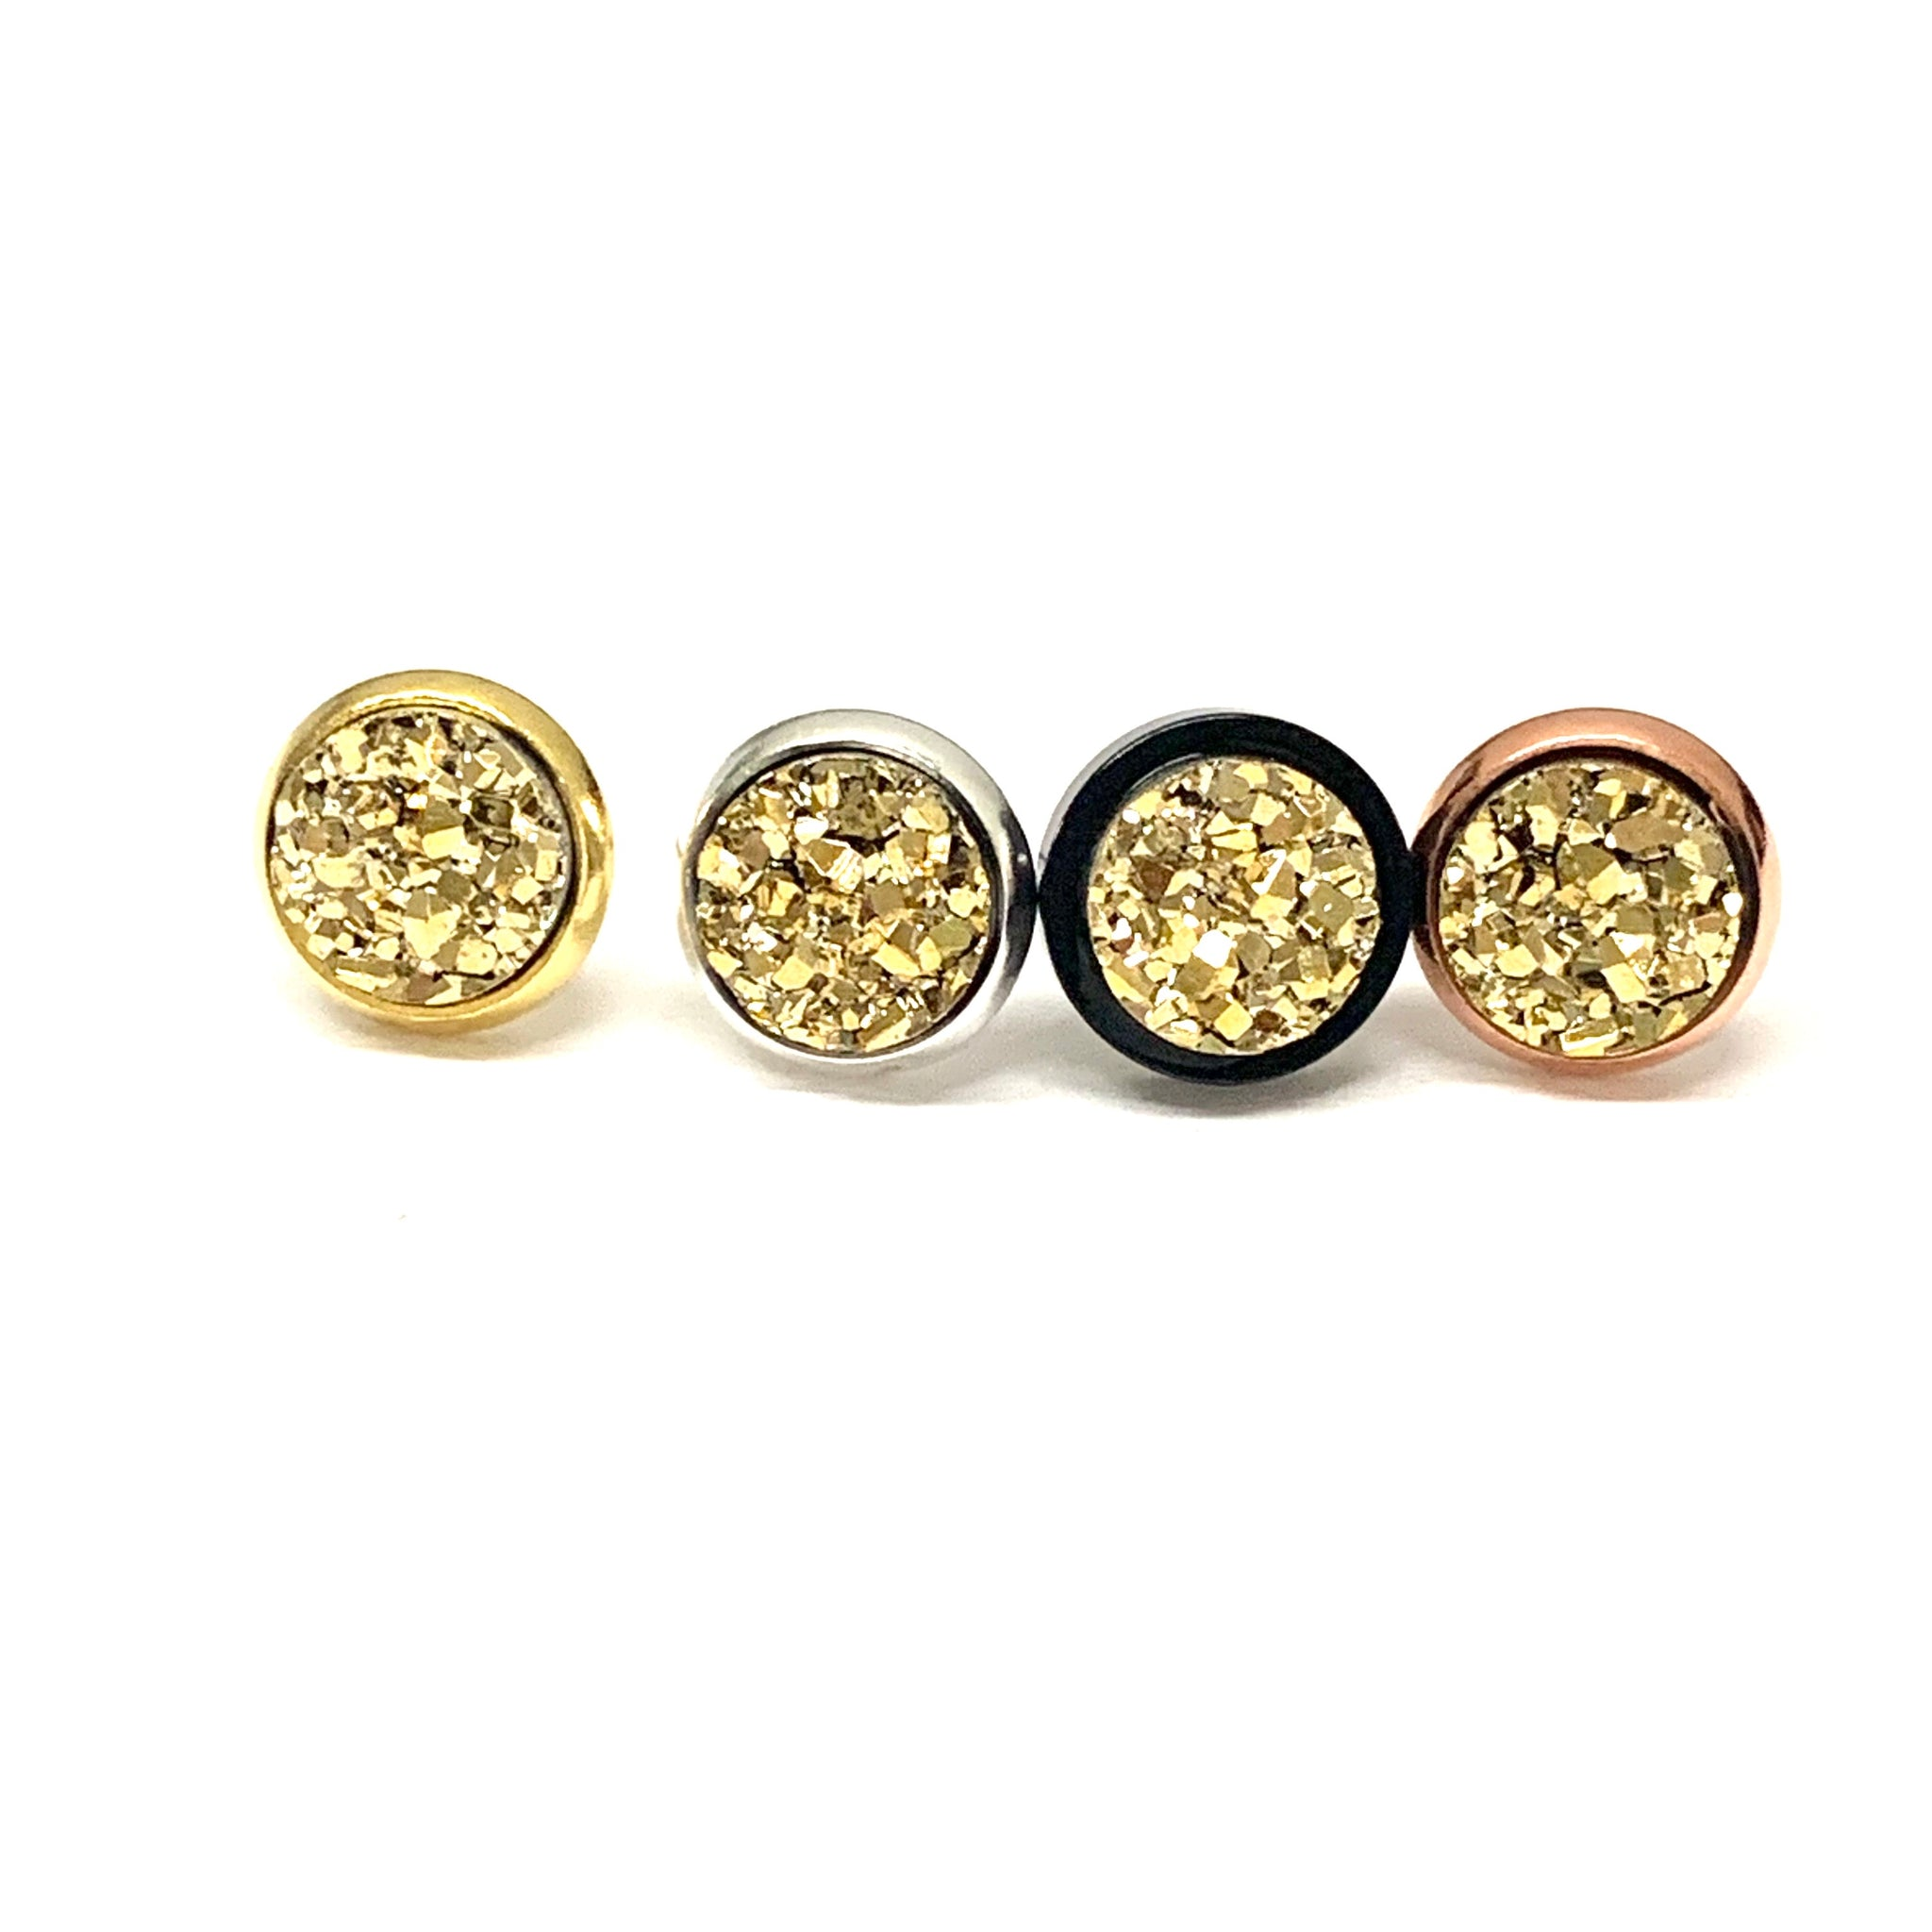 Gold Druzy Earrings 8mm